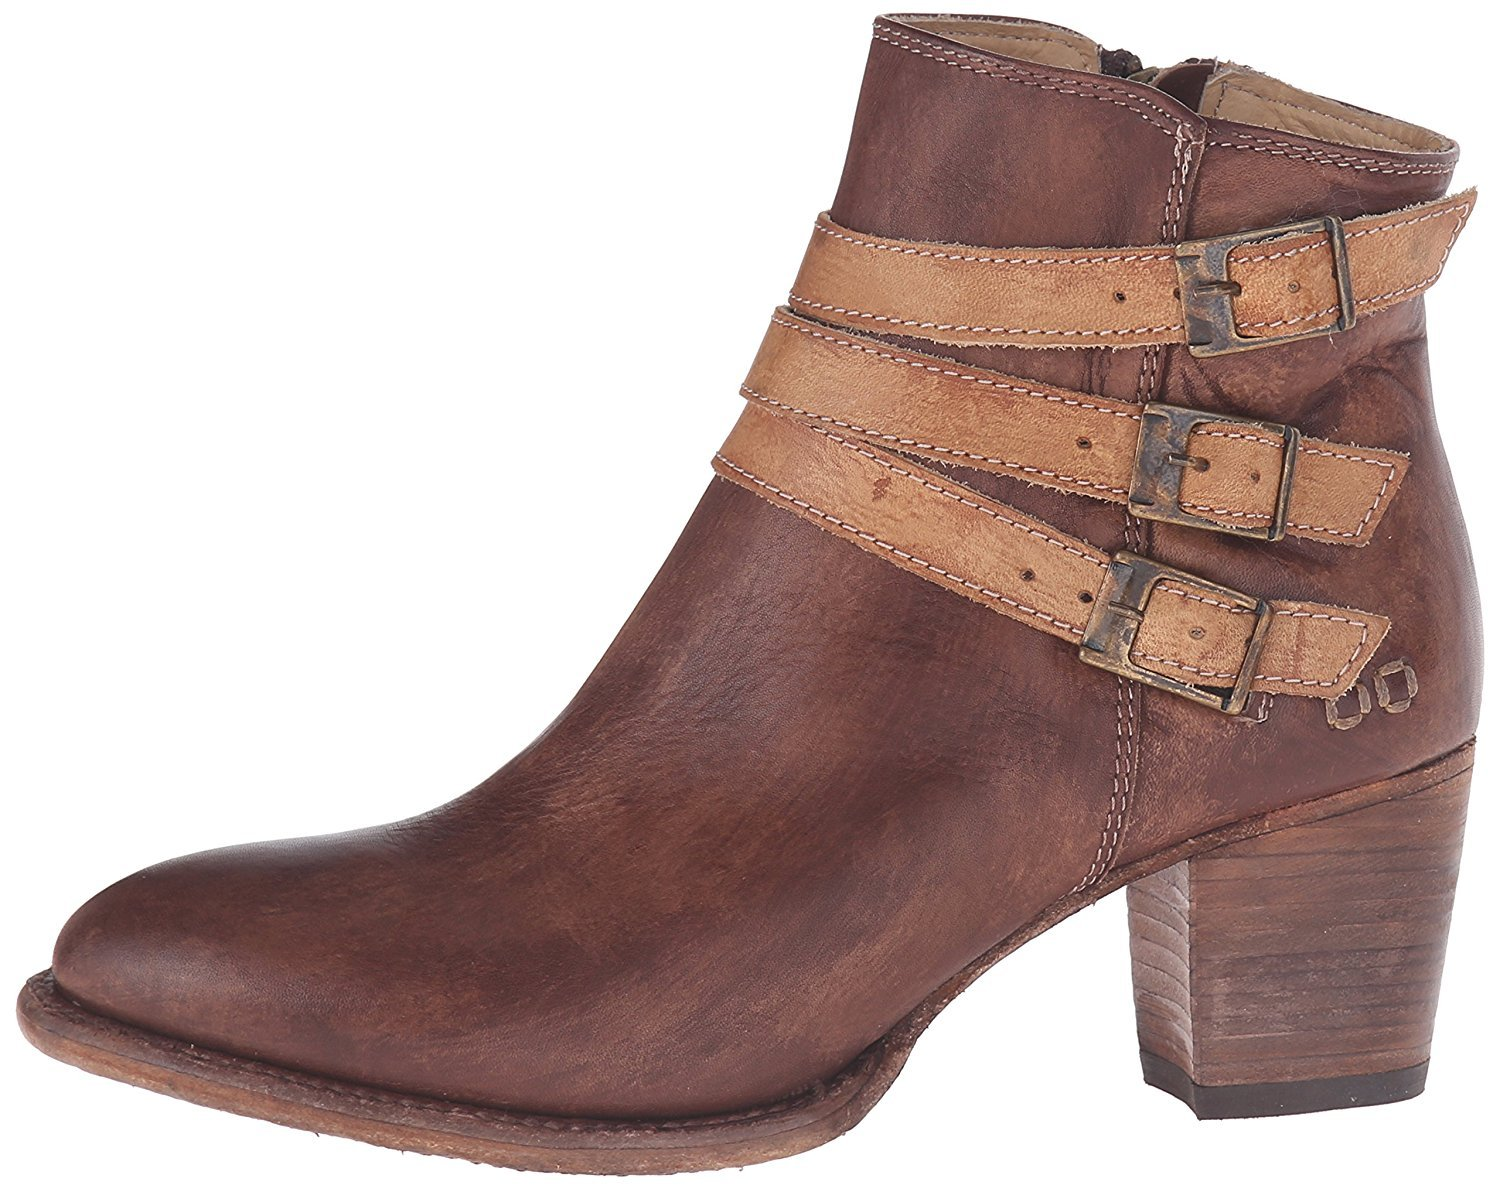 Bed|Stu Women's Begin Boot B01DBU5HBW 10 B(M) US|Black/Tan Teak Driftwood